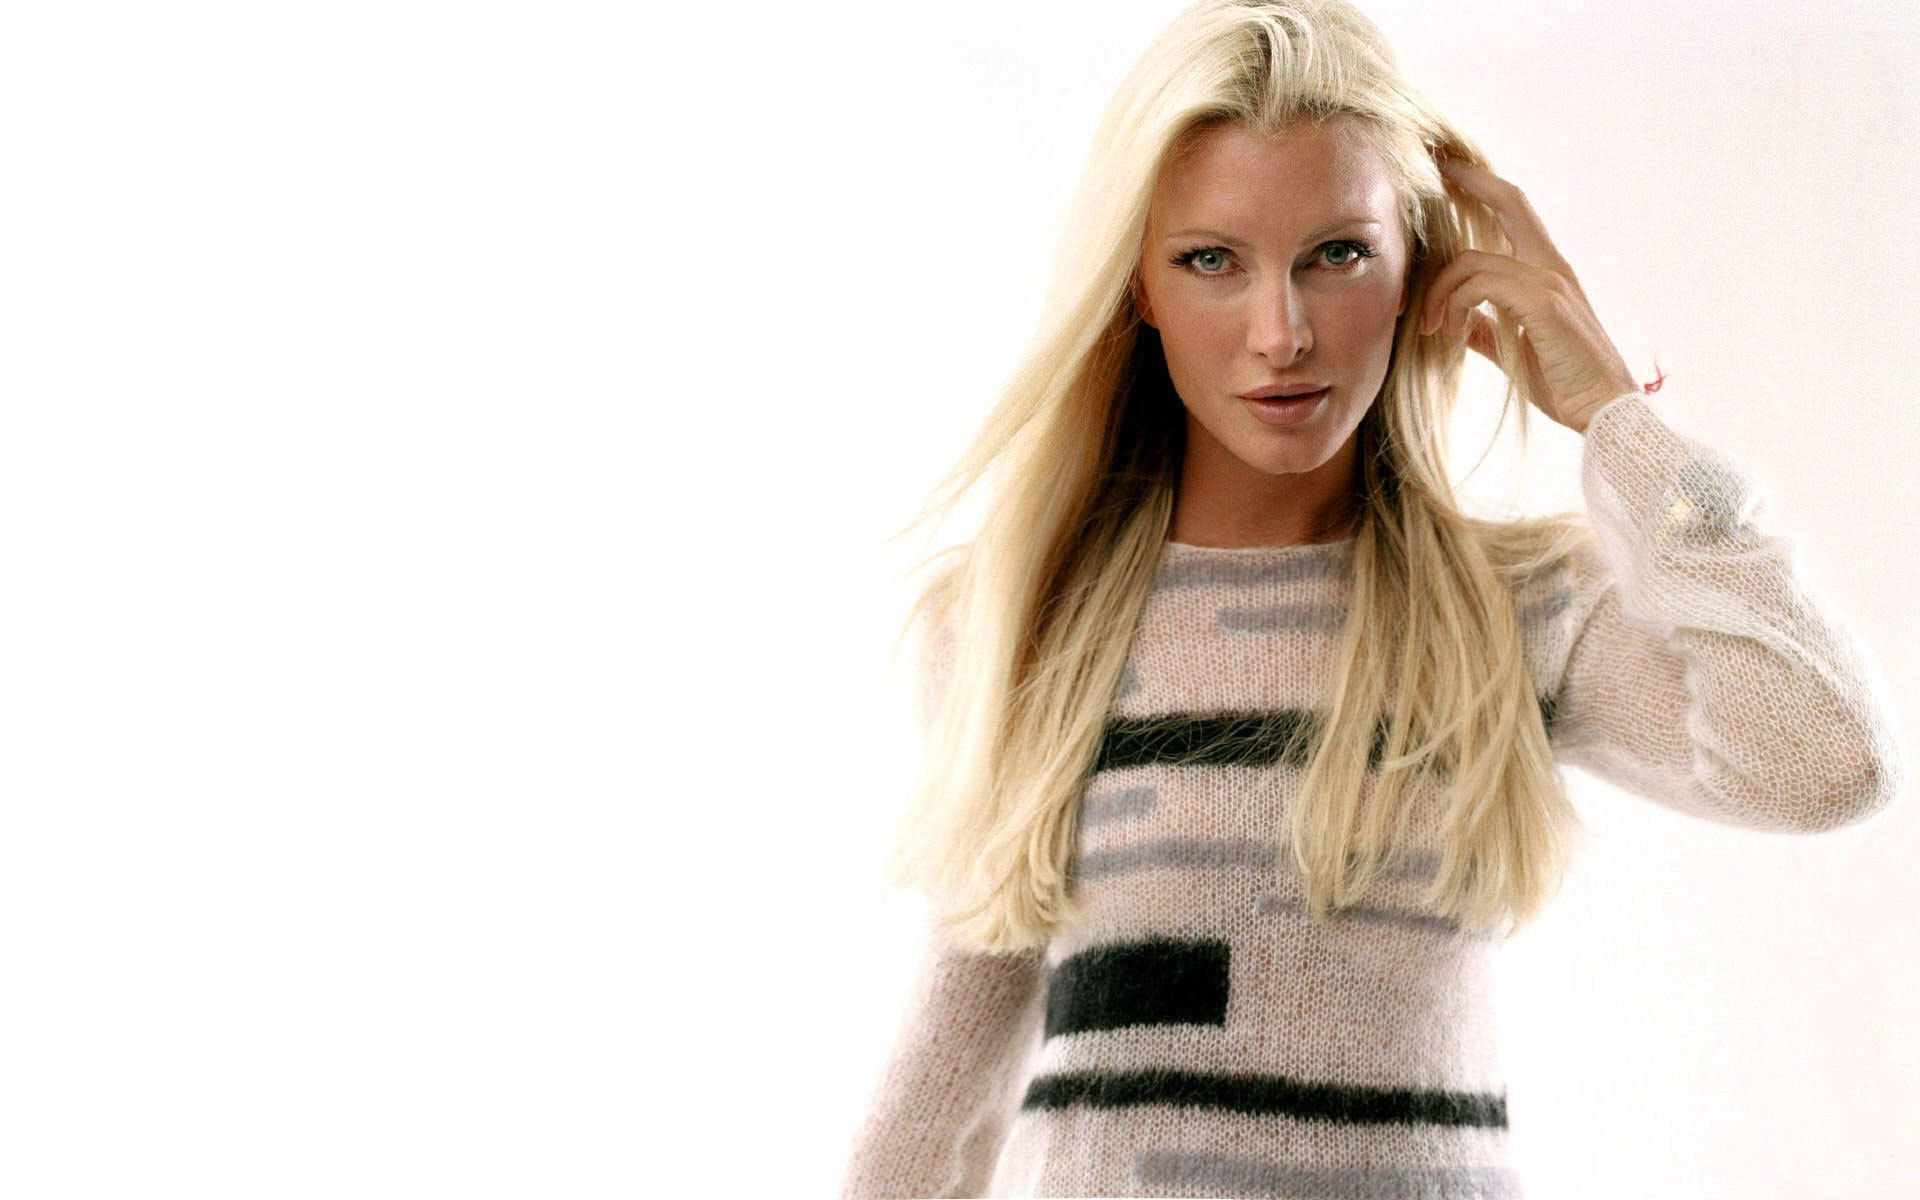 Caprice Bourret Wallpapers Backgrounds